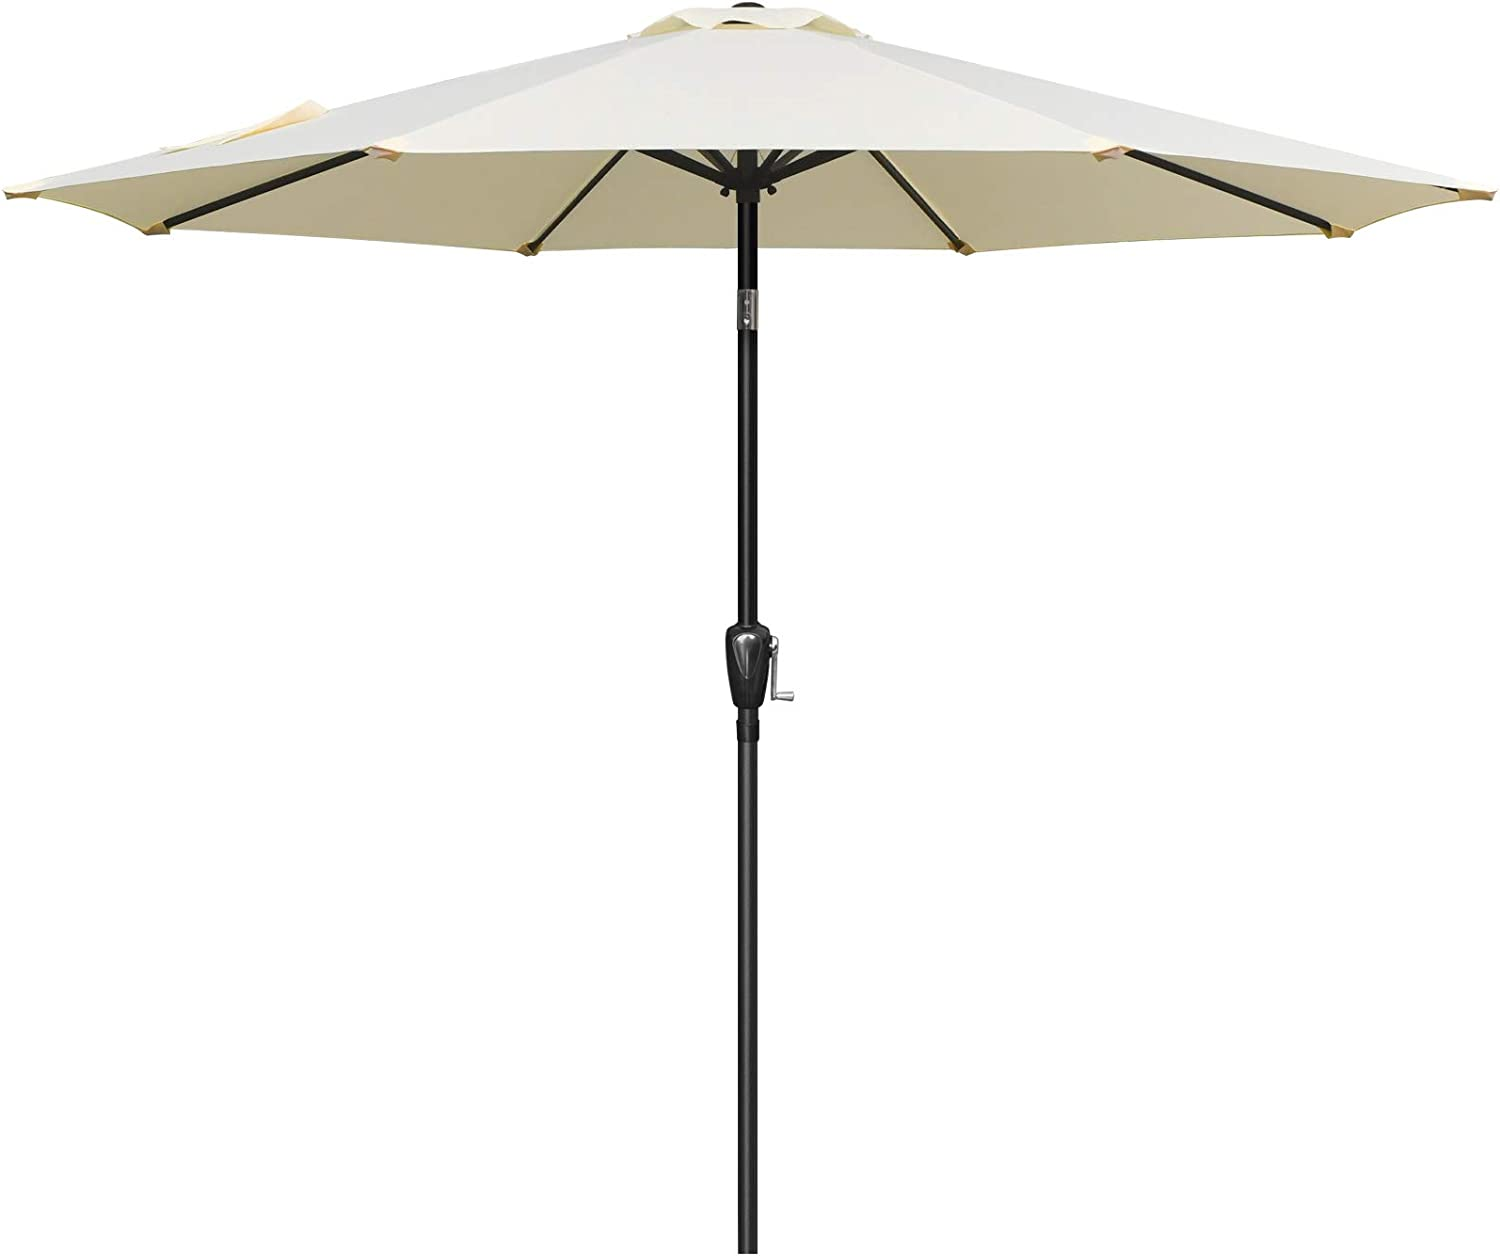 Simple Deluxe 9ft Outdoor Luxury goods Market with Patio Table New color Butto Umbrella